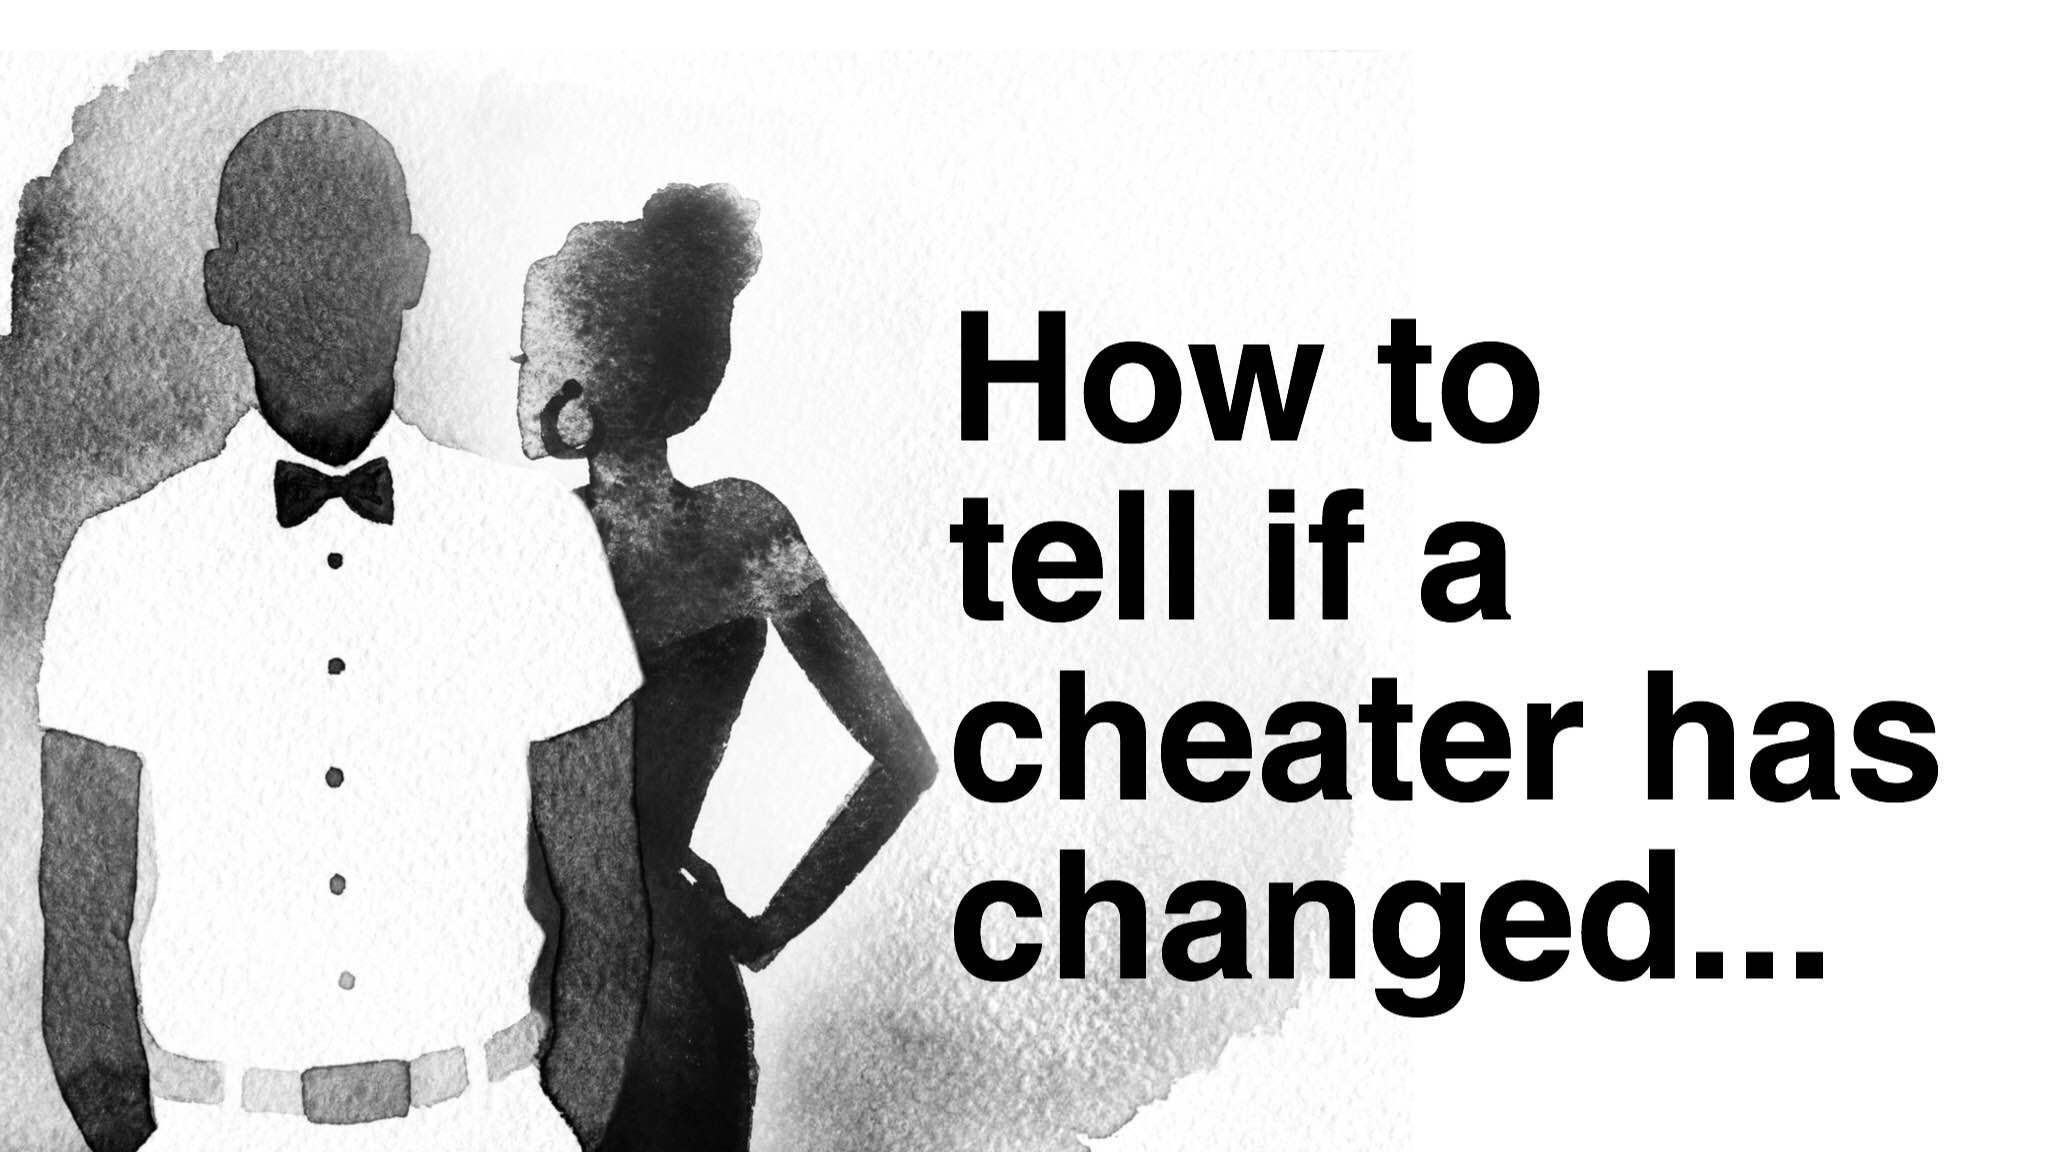 6 signs that he is cheating on you